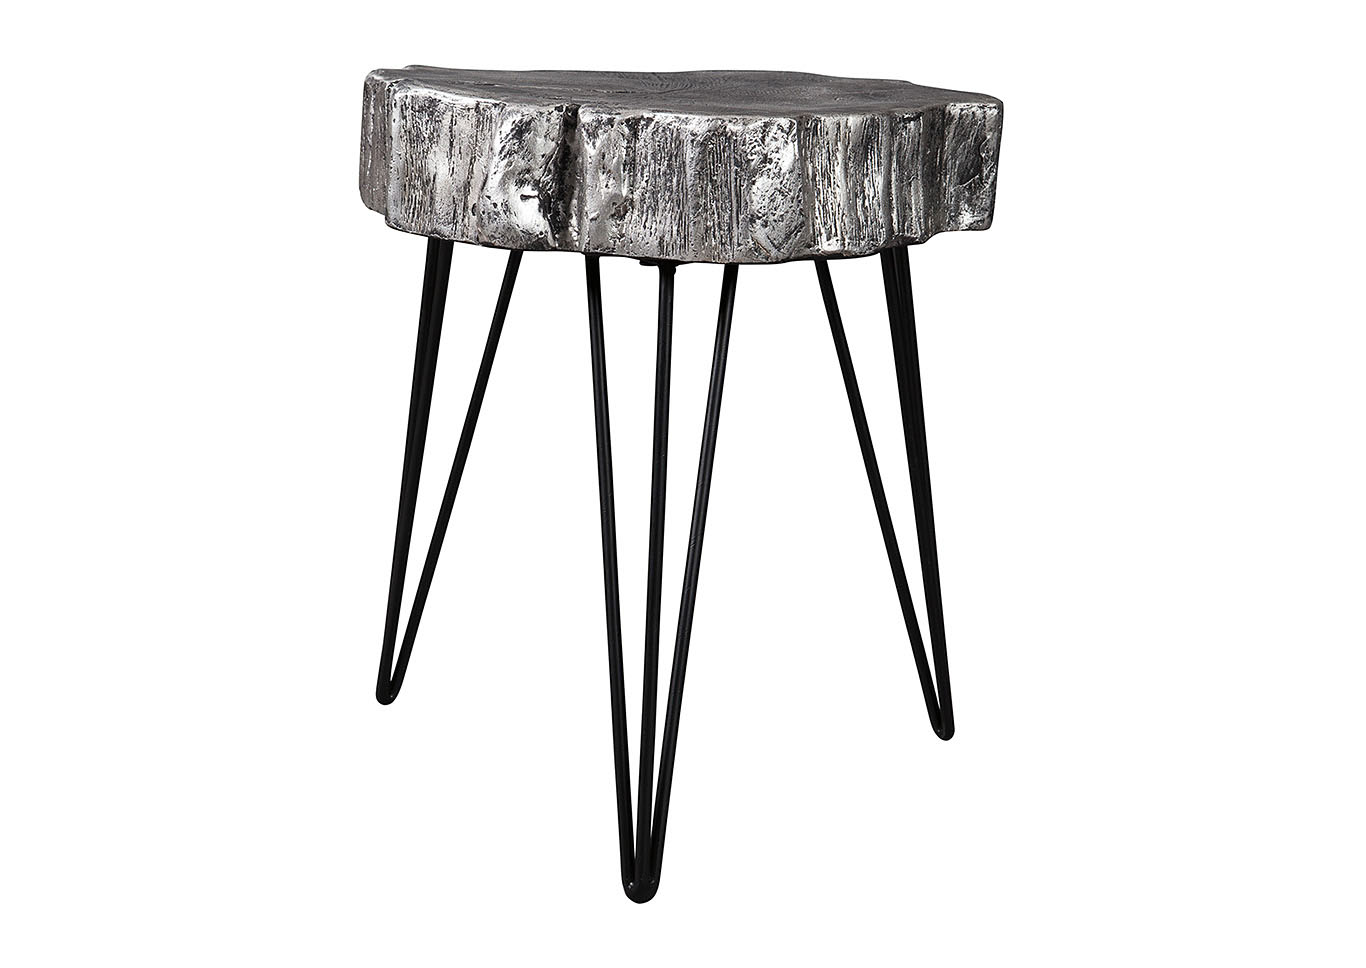 furniture chicago llc dellman antique silver metal accent table finish signature design ashley patio drum wine stoppers target oak stacking tables home interior accessories ikea